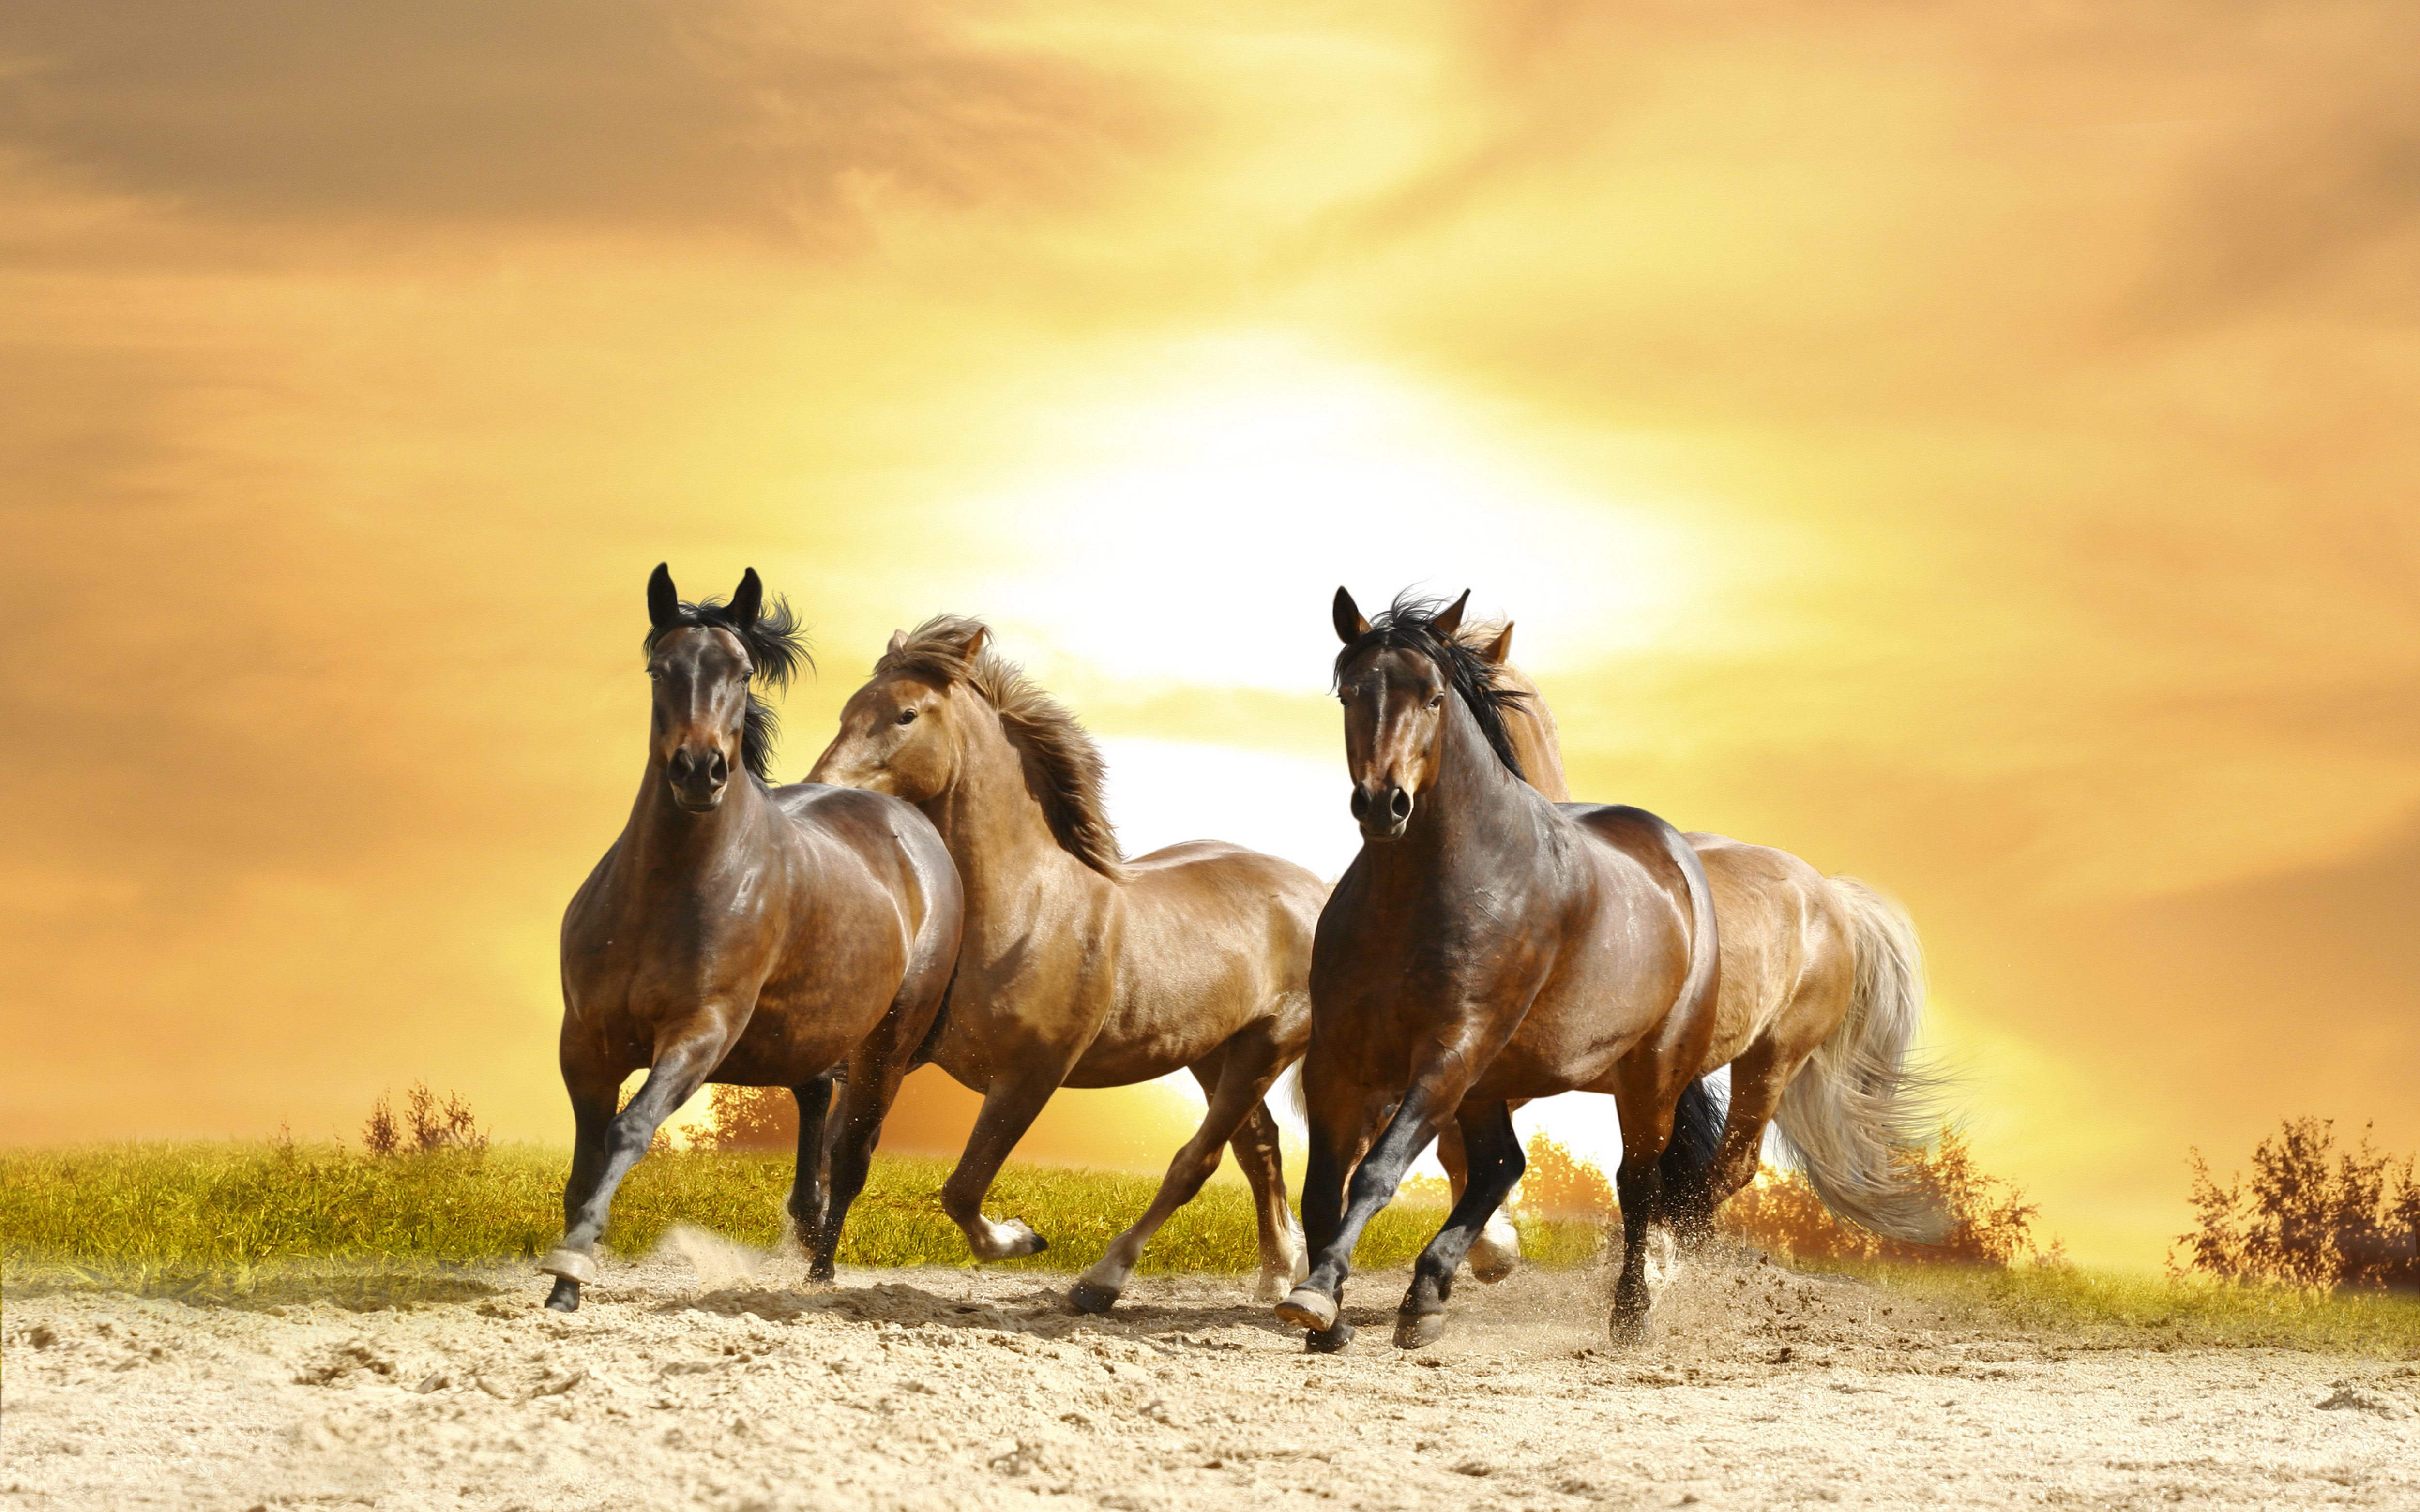 Wallpaper Cars Movie Horses Galloping Sunset Hd Wallpaper 8592 Wallpapers13 Com